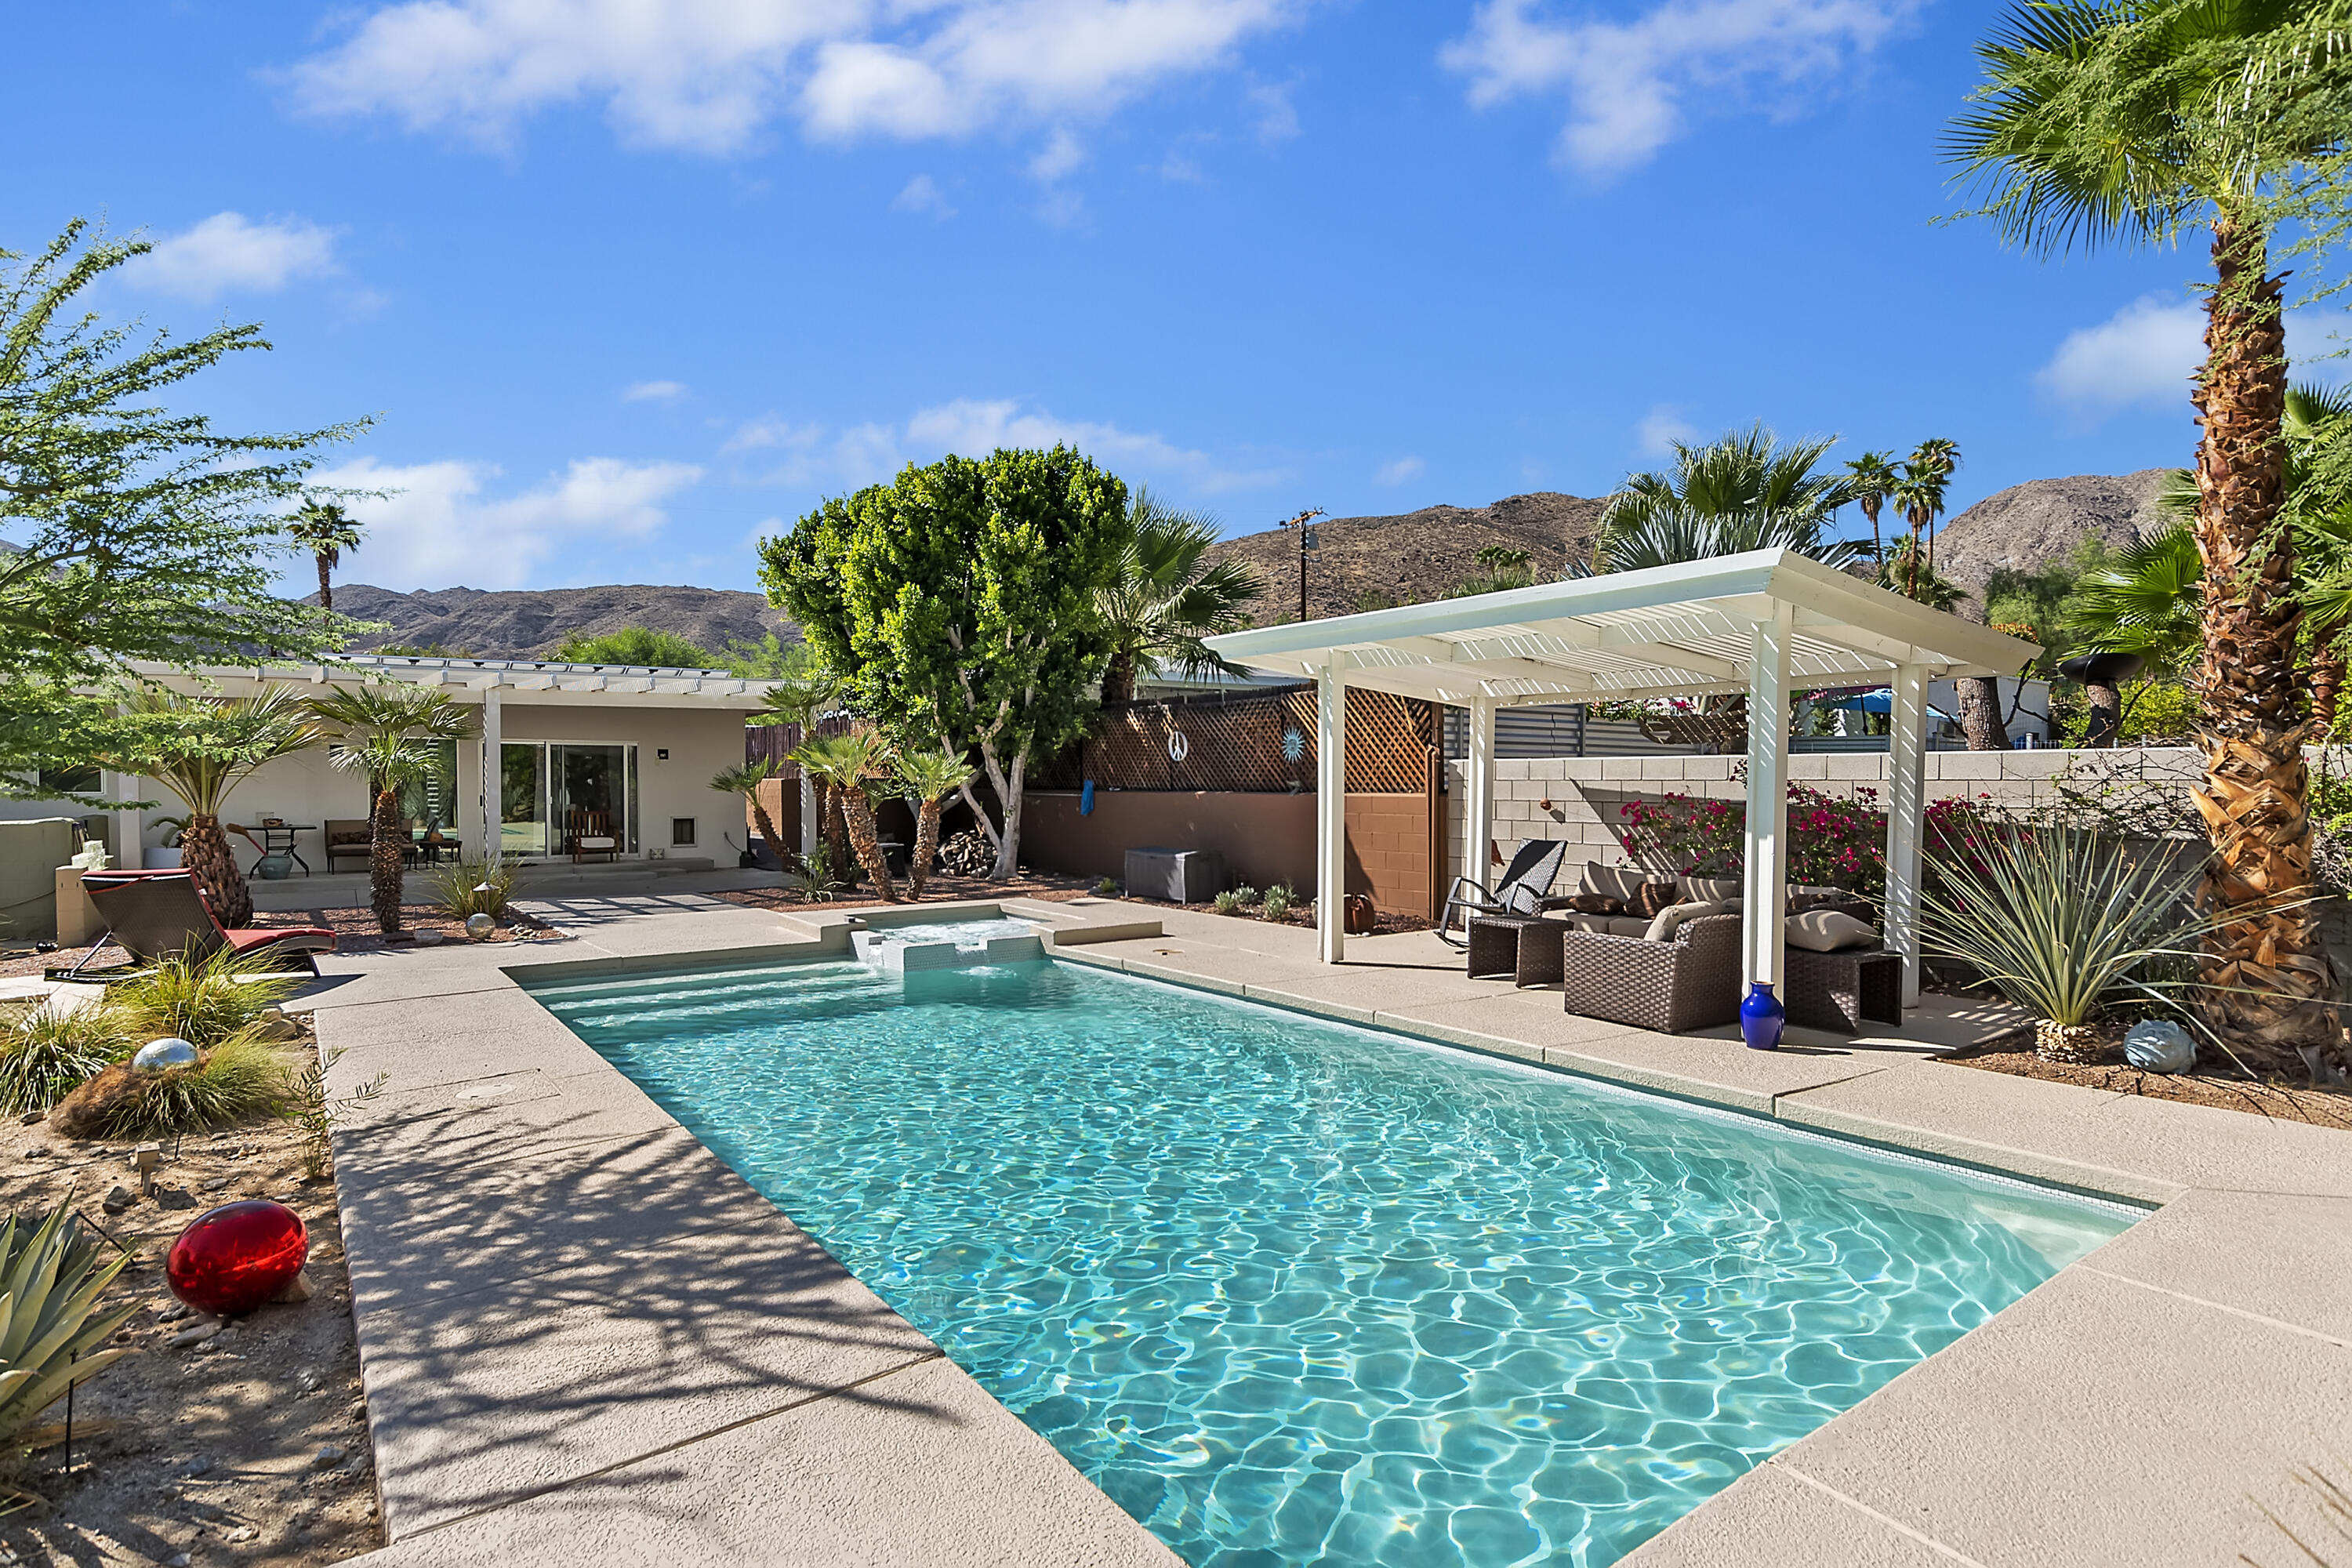 Are you looking for a larger than average mid-century home on an almost half acre that affords total privacy, a view, a European flair, a view, 2170sq ft (per assessor), and did I say a View?  Then, you have found it! Built in 1969, This beautiful updated 2+, high atop the Cathedral Canyon Cove features concrete floors, wood paneling and beamed ceilings with halogen spotlights throughout. The upgraded galley kitchen includes stainless steel countertops, a Sub-zero refrigerator, a 6-burner gas stove top and Kitchenaid oven, a huge pantry, and lots of cupboard and cabinet space. The kitchen sliding glass doors opens up to a large patio that exposes a beautiful northern view of the valley. The living room is large and bright with windows that also open up to both mountain and valley views. Both oversized bedrooms have sliding glass doors that open up to the resort like, most private, back yard. Both bathrooms are upgraded, European in nature and design, and are also spacious. The primary bedroom has a ceiling fan, and a large walk in closet.  The back yard is both beautiful, very calming and peaceful. A large salt water pool and spa is the focal point that is shared with a pergola, fire pit, and cool decking. North of the pool area is a lush garden area with native palo verde trees, a cactus garden and a small walking trail. There is RV parking.. *The AC system is 2020 new. The home comes with OWNED (not leased) solar. The roof has recently been upgraded to foam.